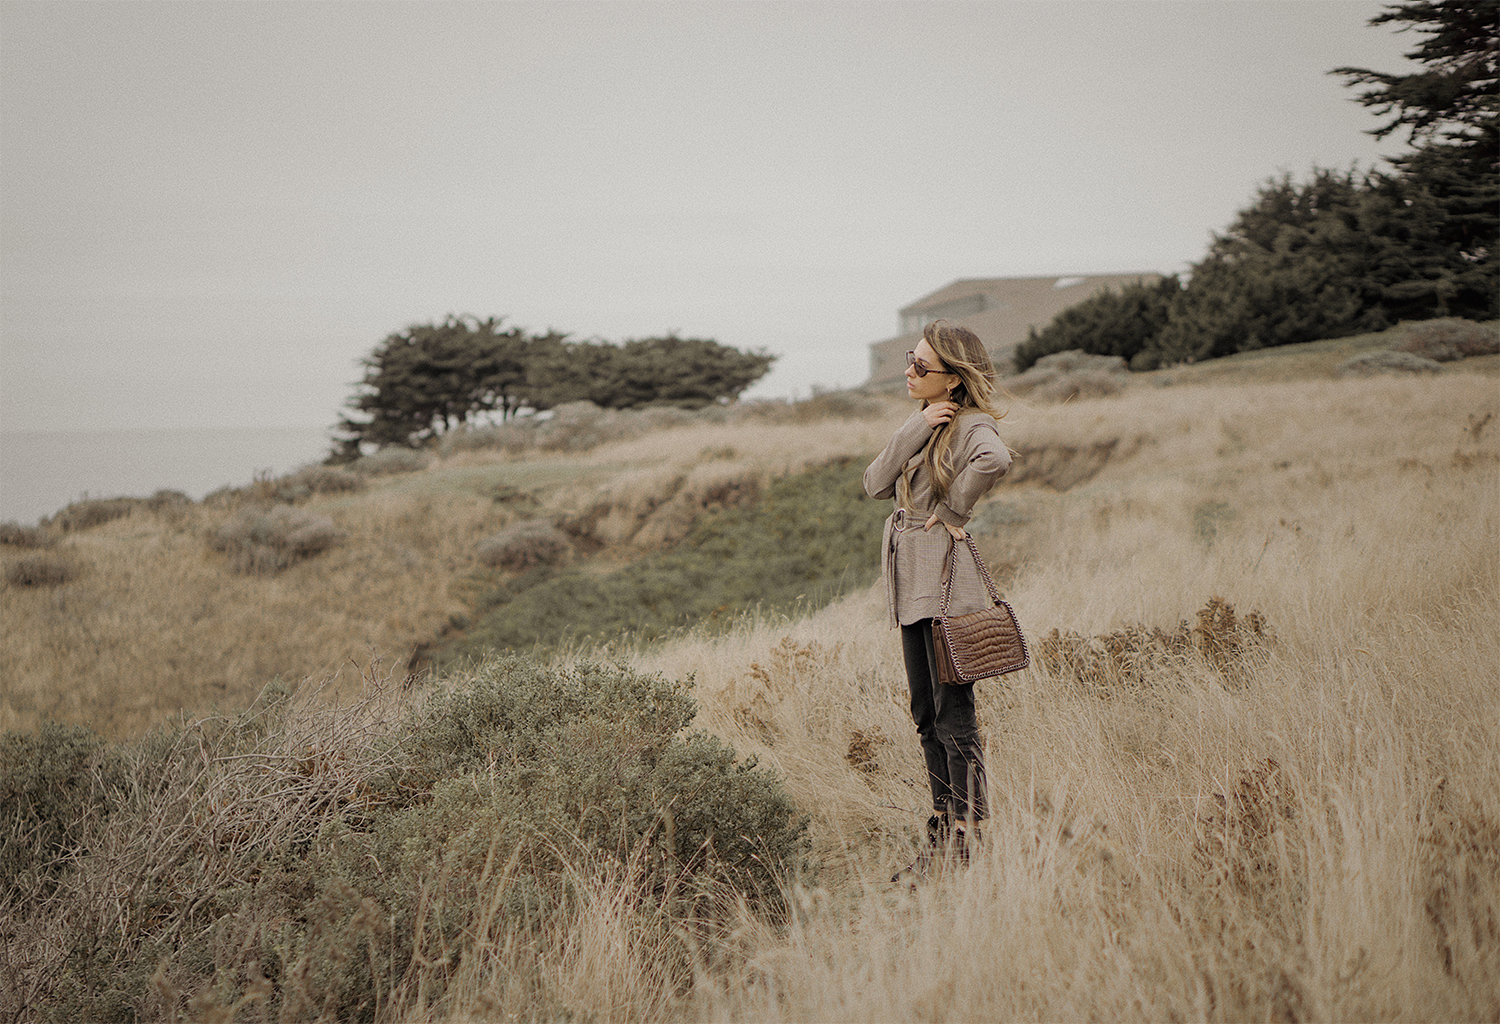 fashion_editorial_check_jacket_california_lena_juice_the_white_ocean_06